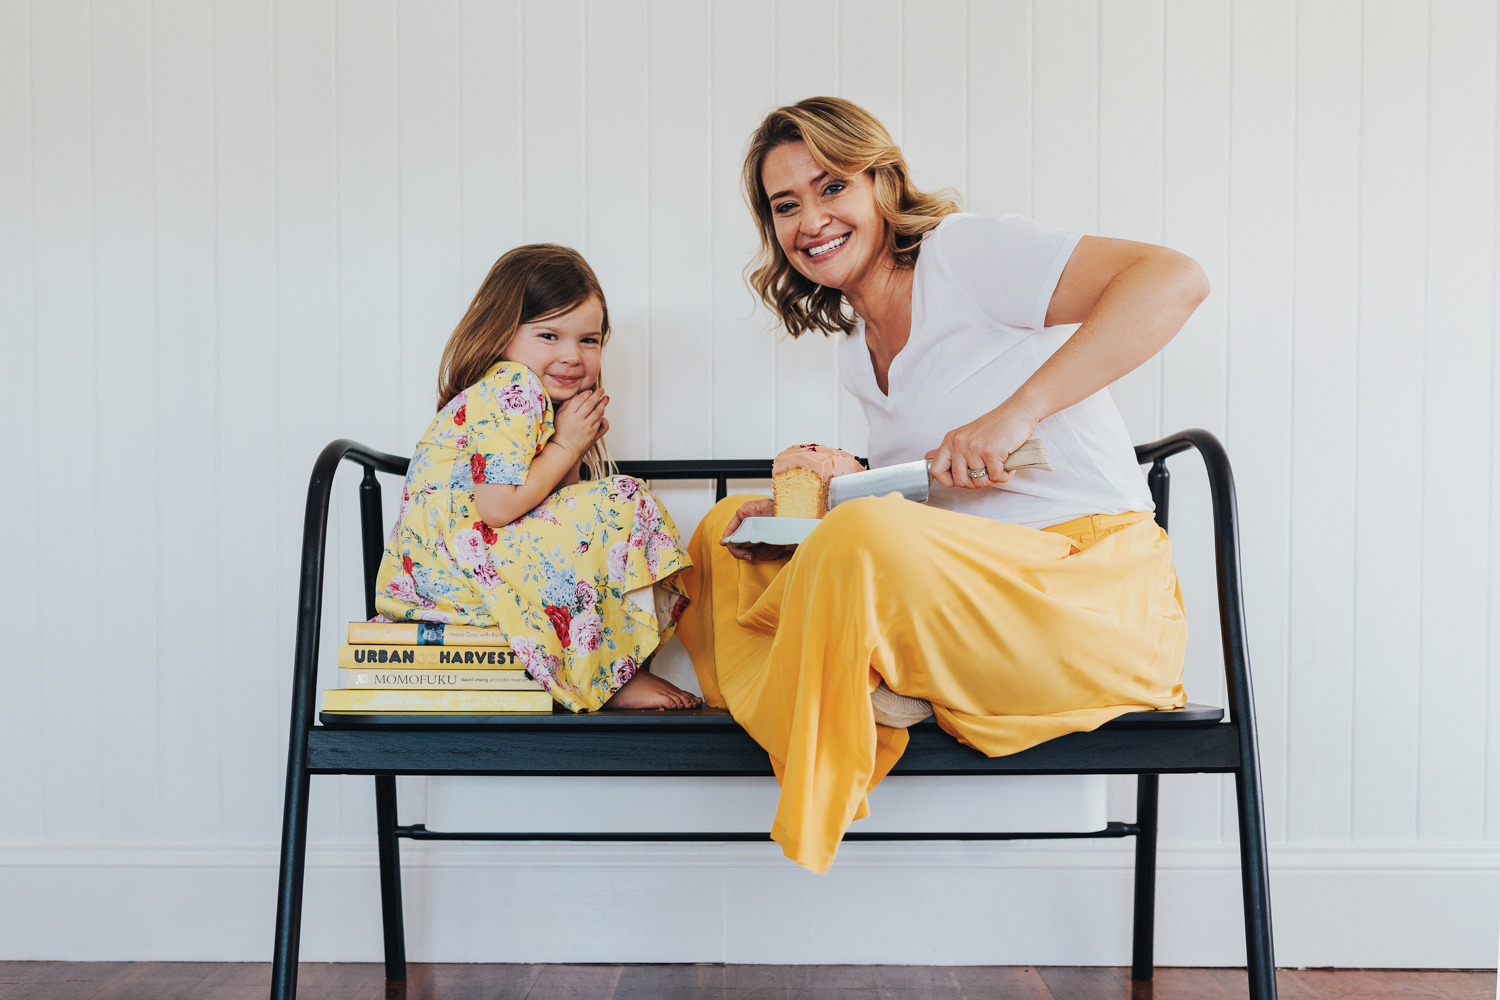 Woman and child sit on chair and share sponge cake and smile for